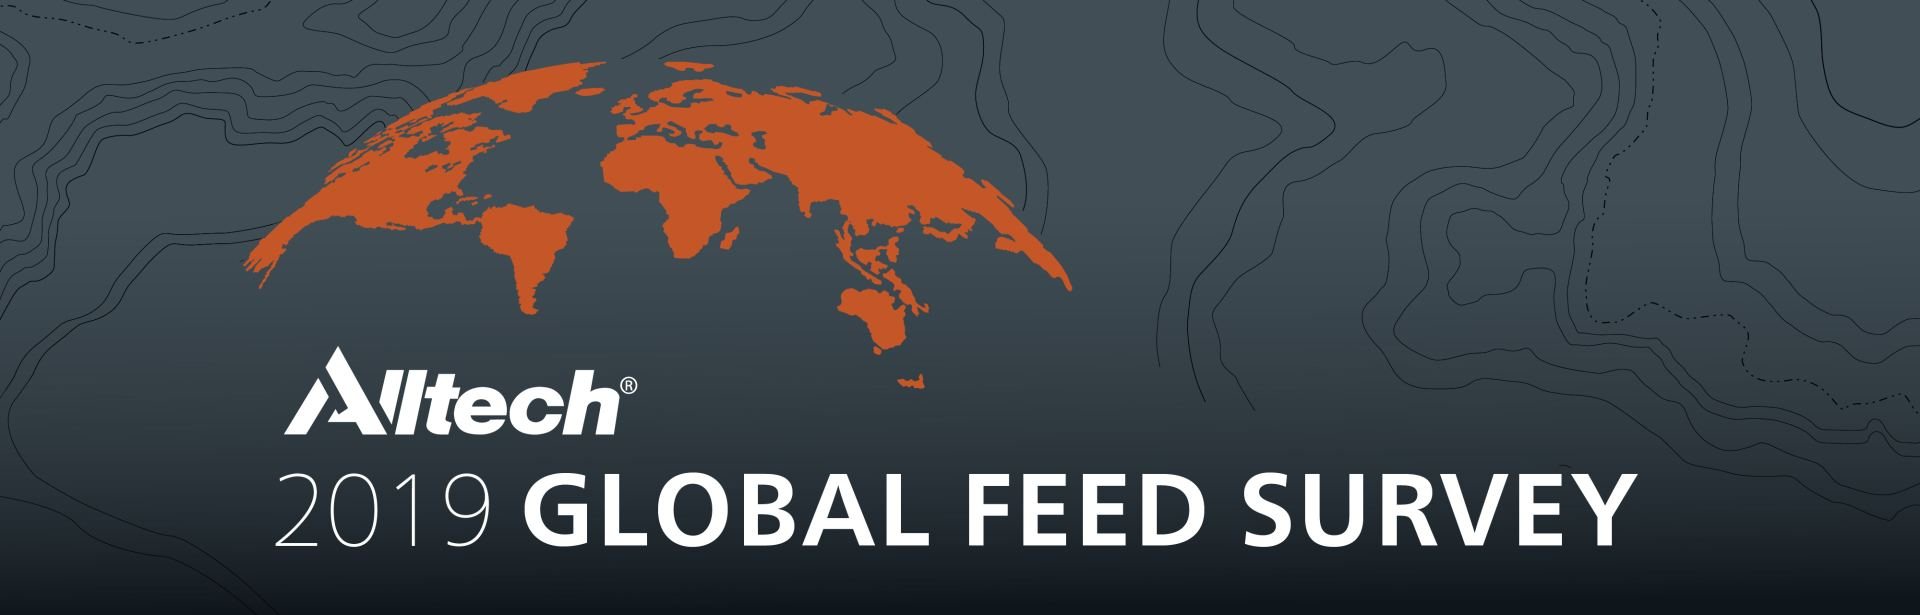 Alltech 2019 Global Feed Survey